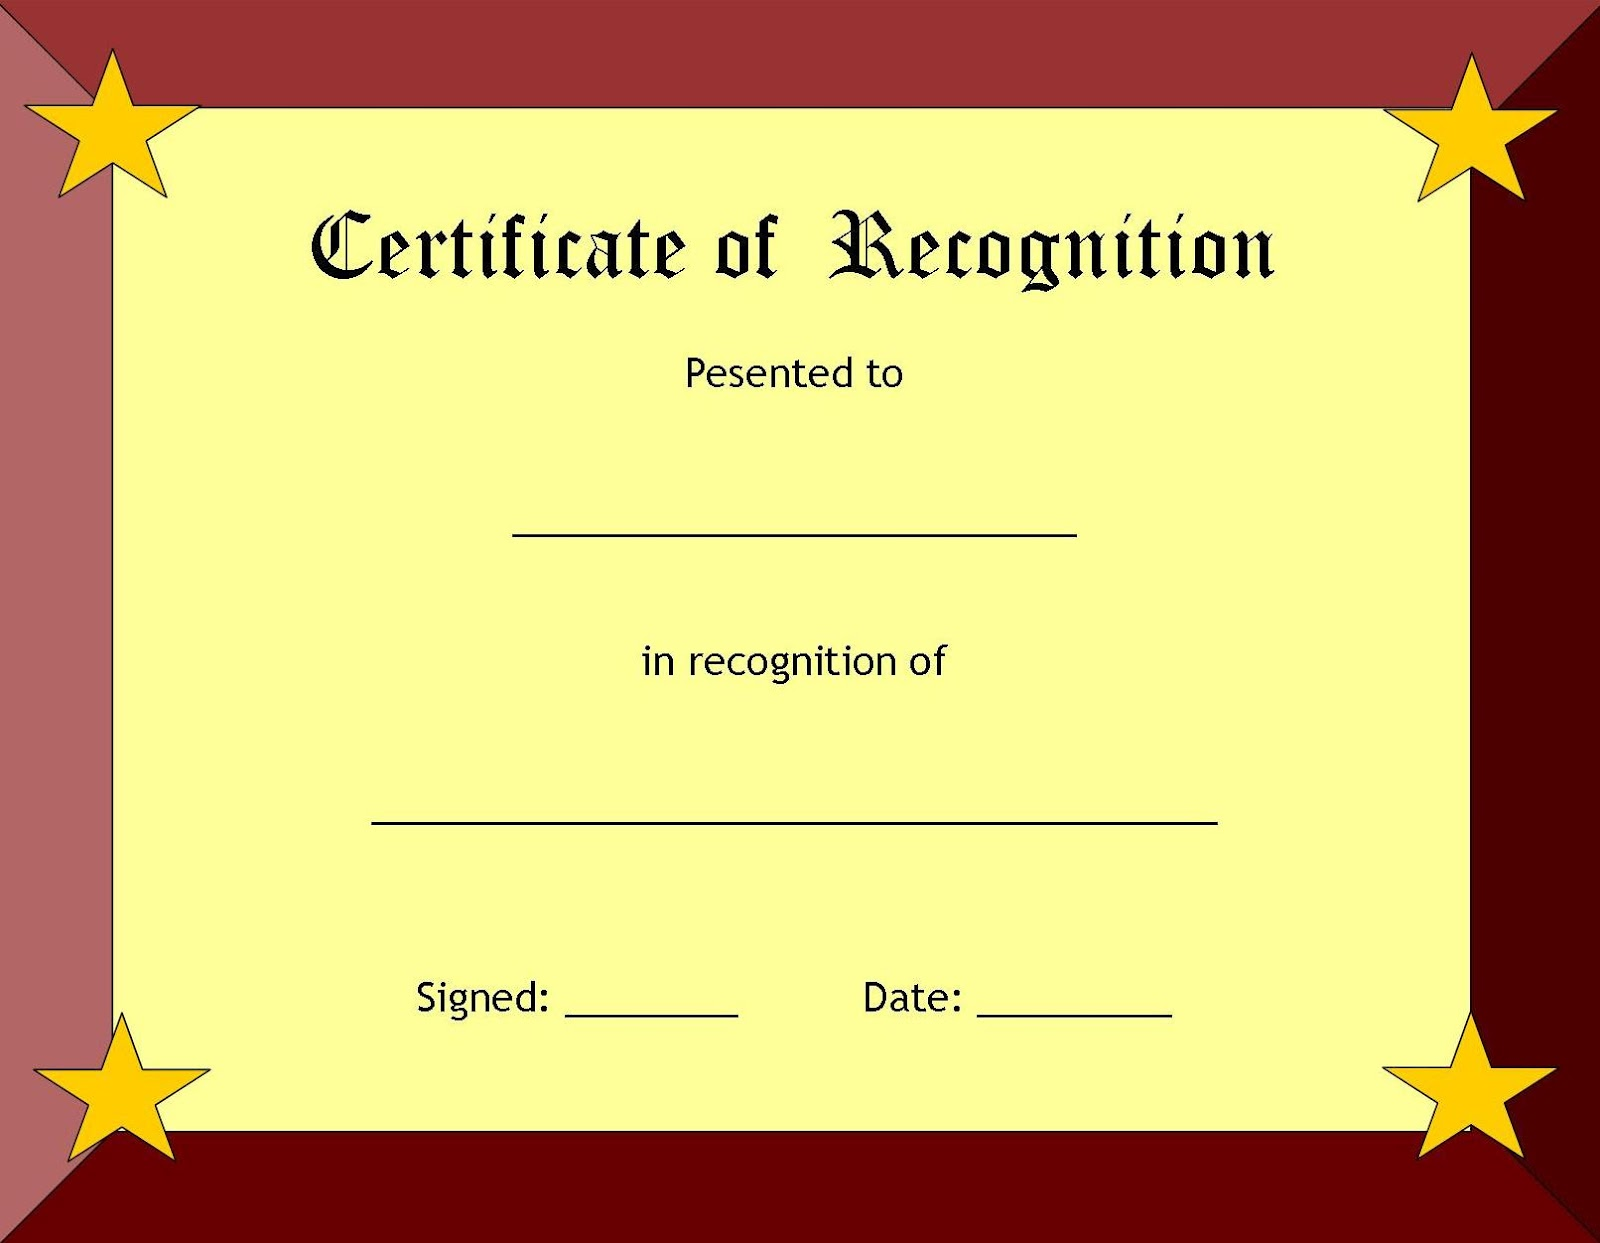 free certificate templates - a collection of free certificate borders and templates